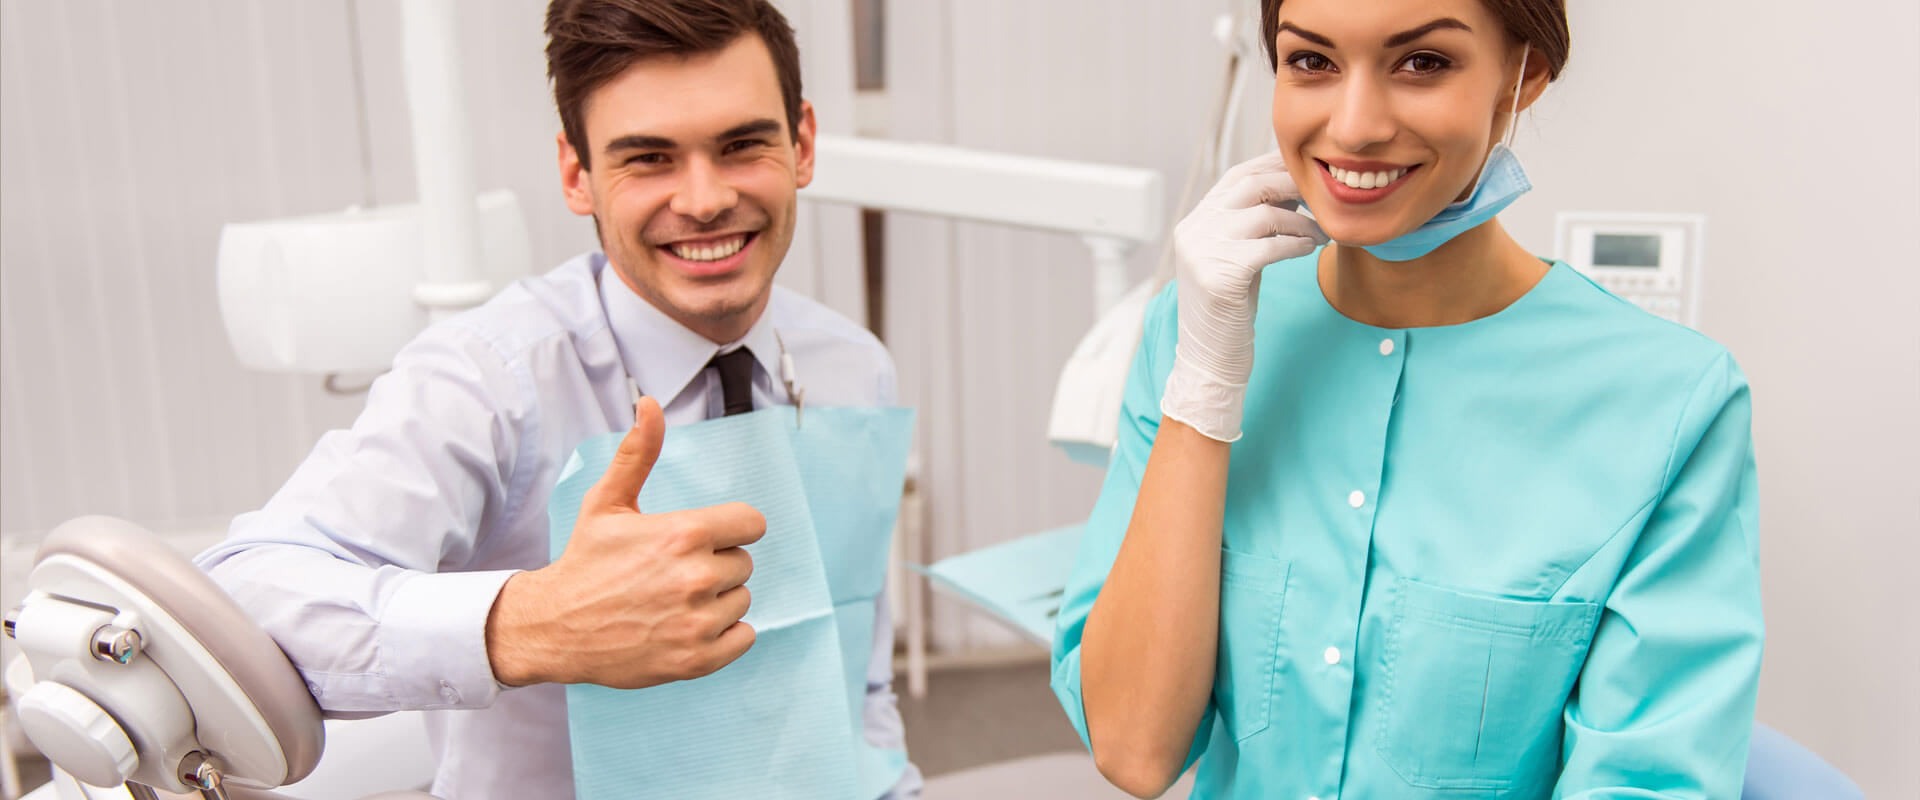 Patient showing thumbs up while assistant smiling at dental clinic